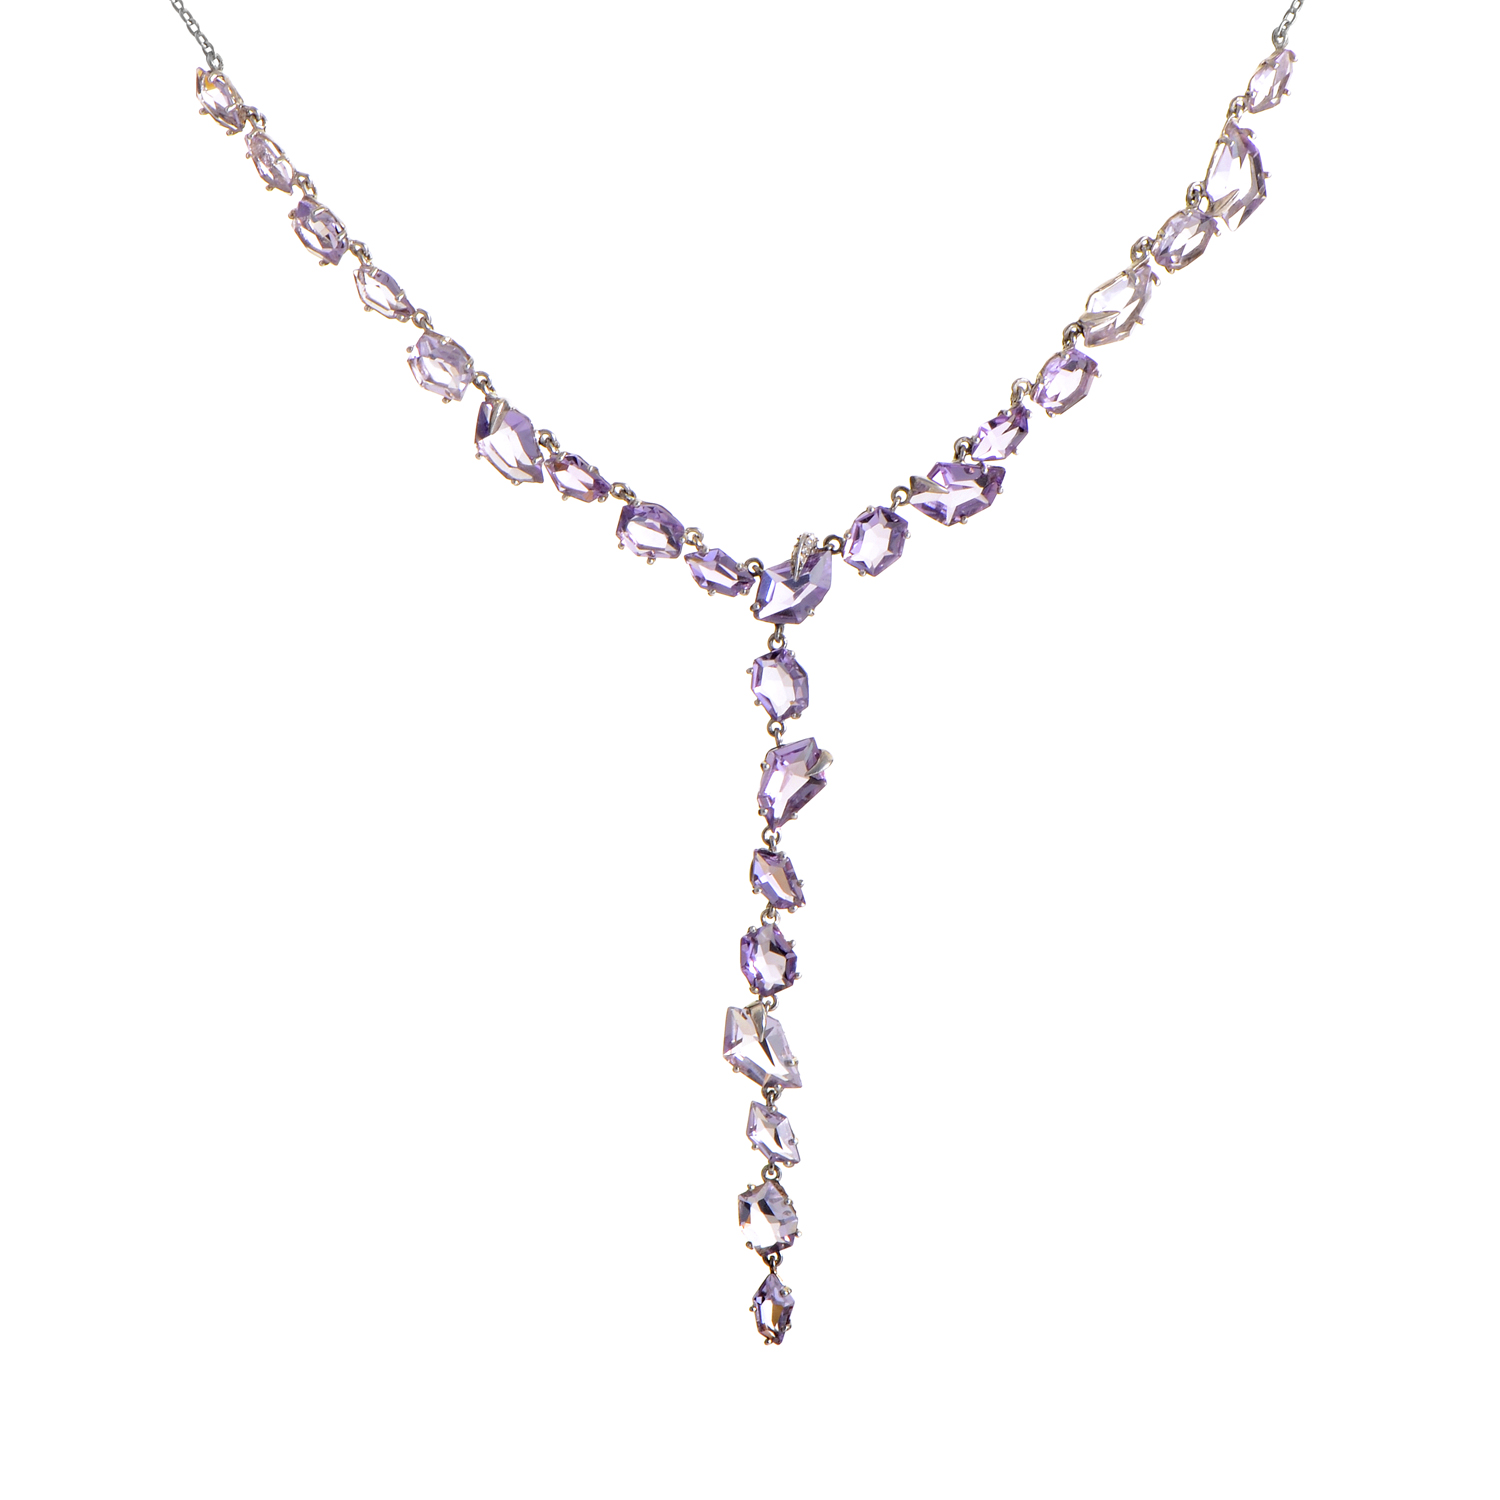 Women's Sterling Silver Diamond & Amethyst Lariat Style Necklace FN41N046